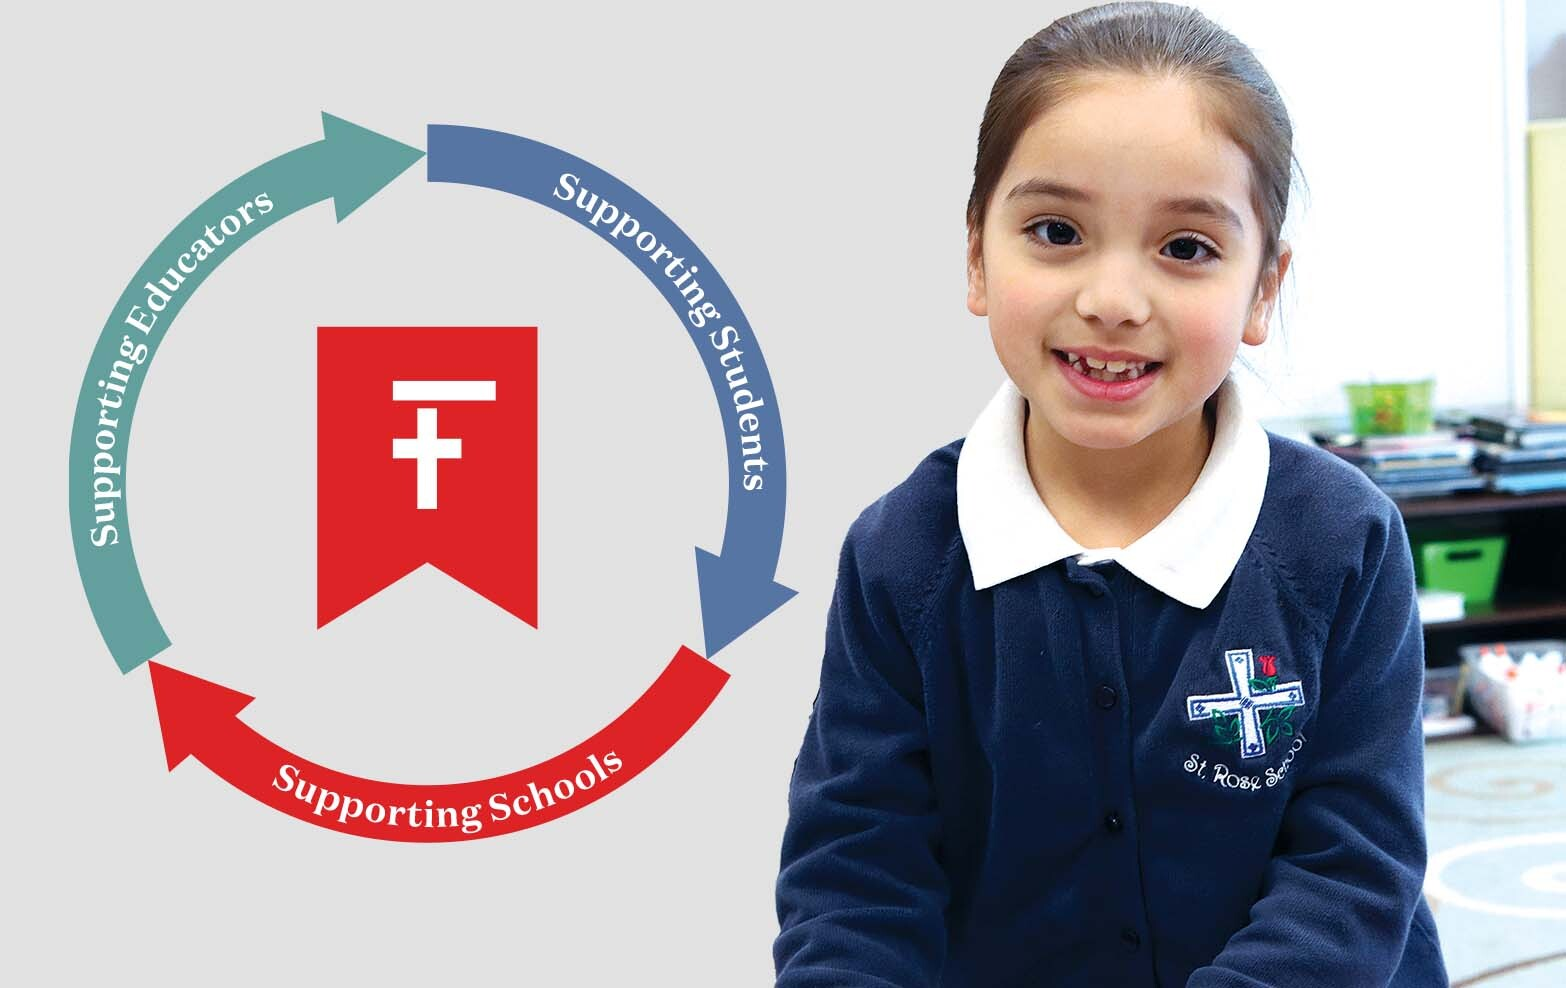 Student from St. Rose school and diagram of Fulcrum programs working together